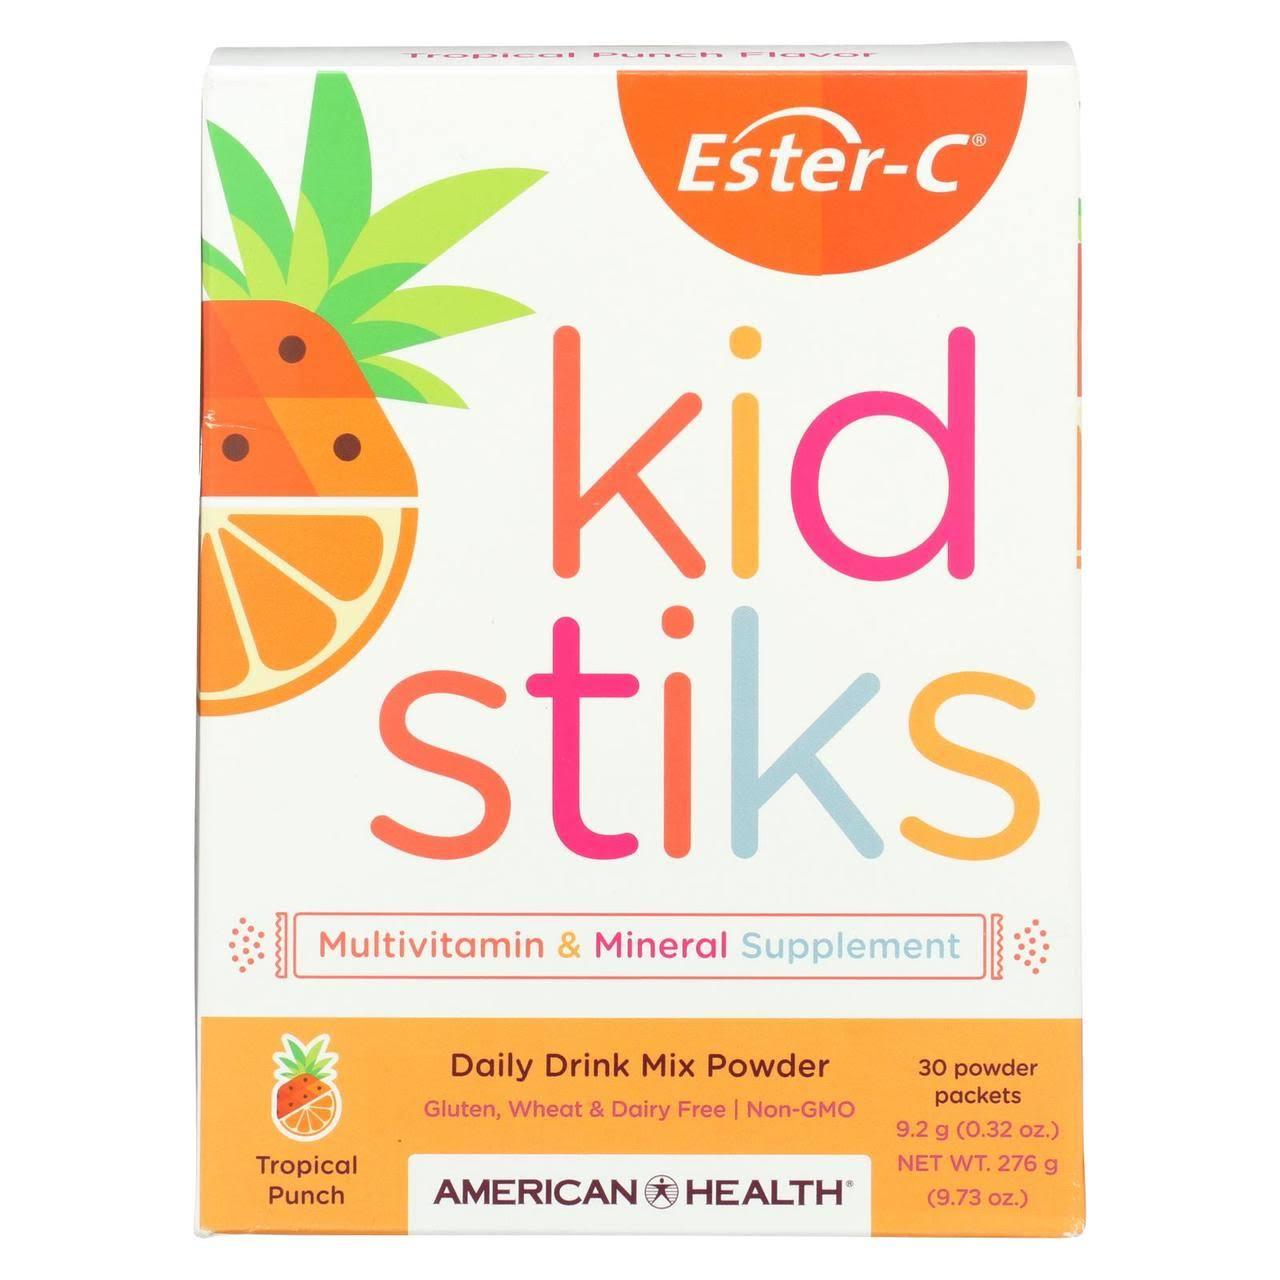 American Health Ester-C Kid Stiks Drink Mix Powder - Tropical Punch, 30 Packets